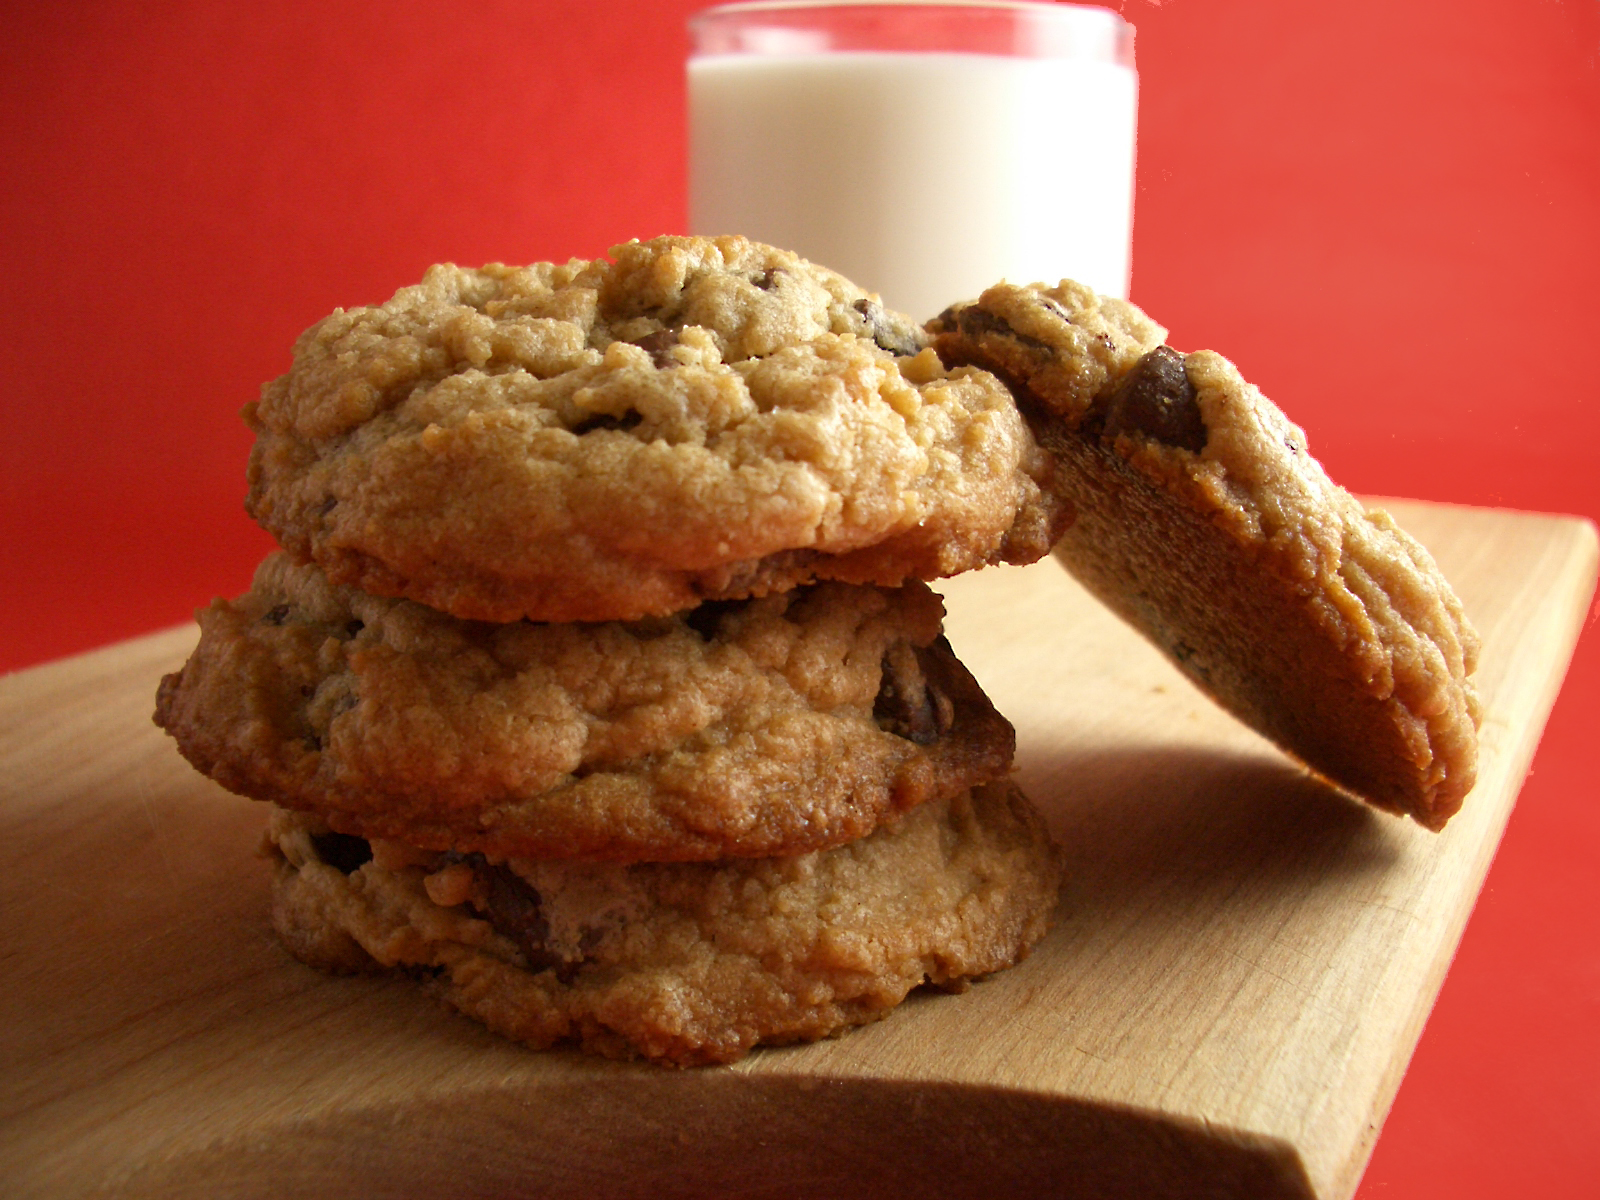 Goodies by Anna: Peanut Butter Chocolate Chunk Cookies